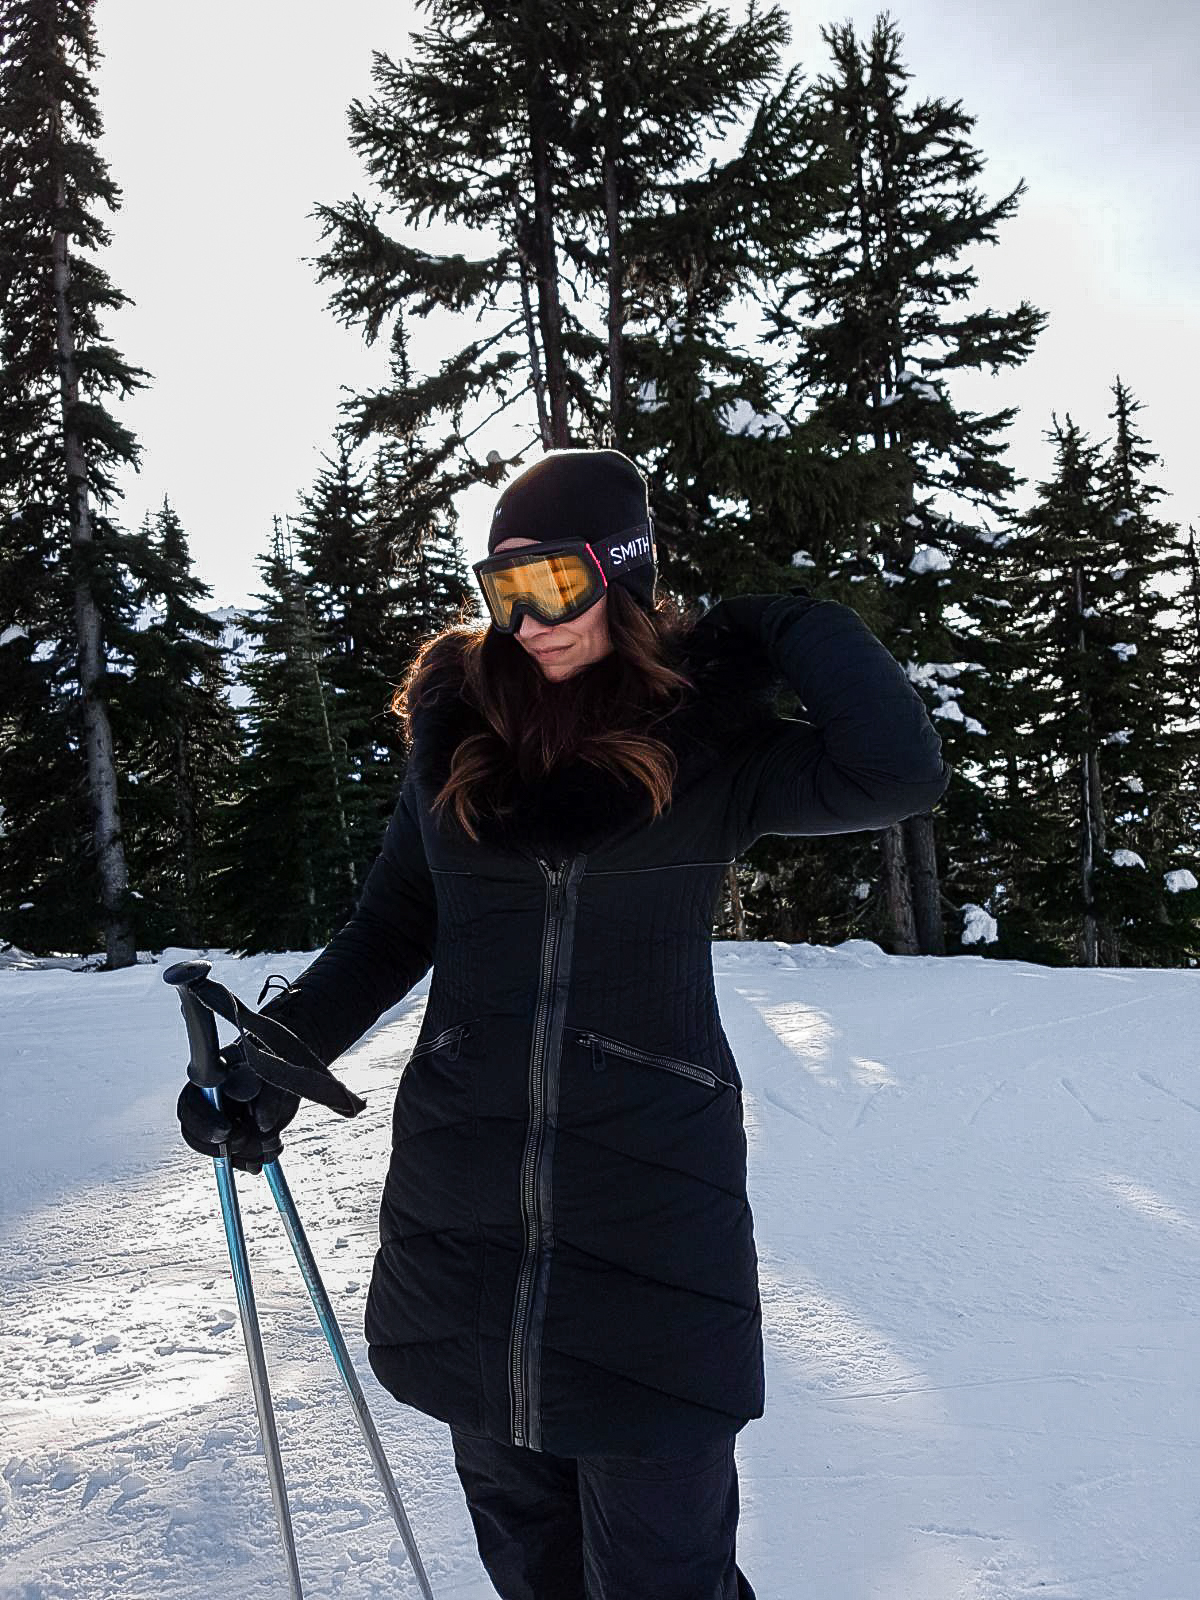 Whistler, Epic Pass, Winter Vacation, Staycation, Ski, Snowboard, Travel